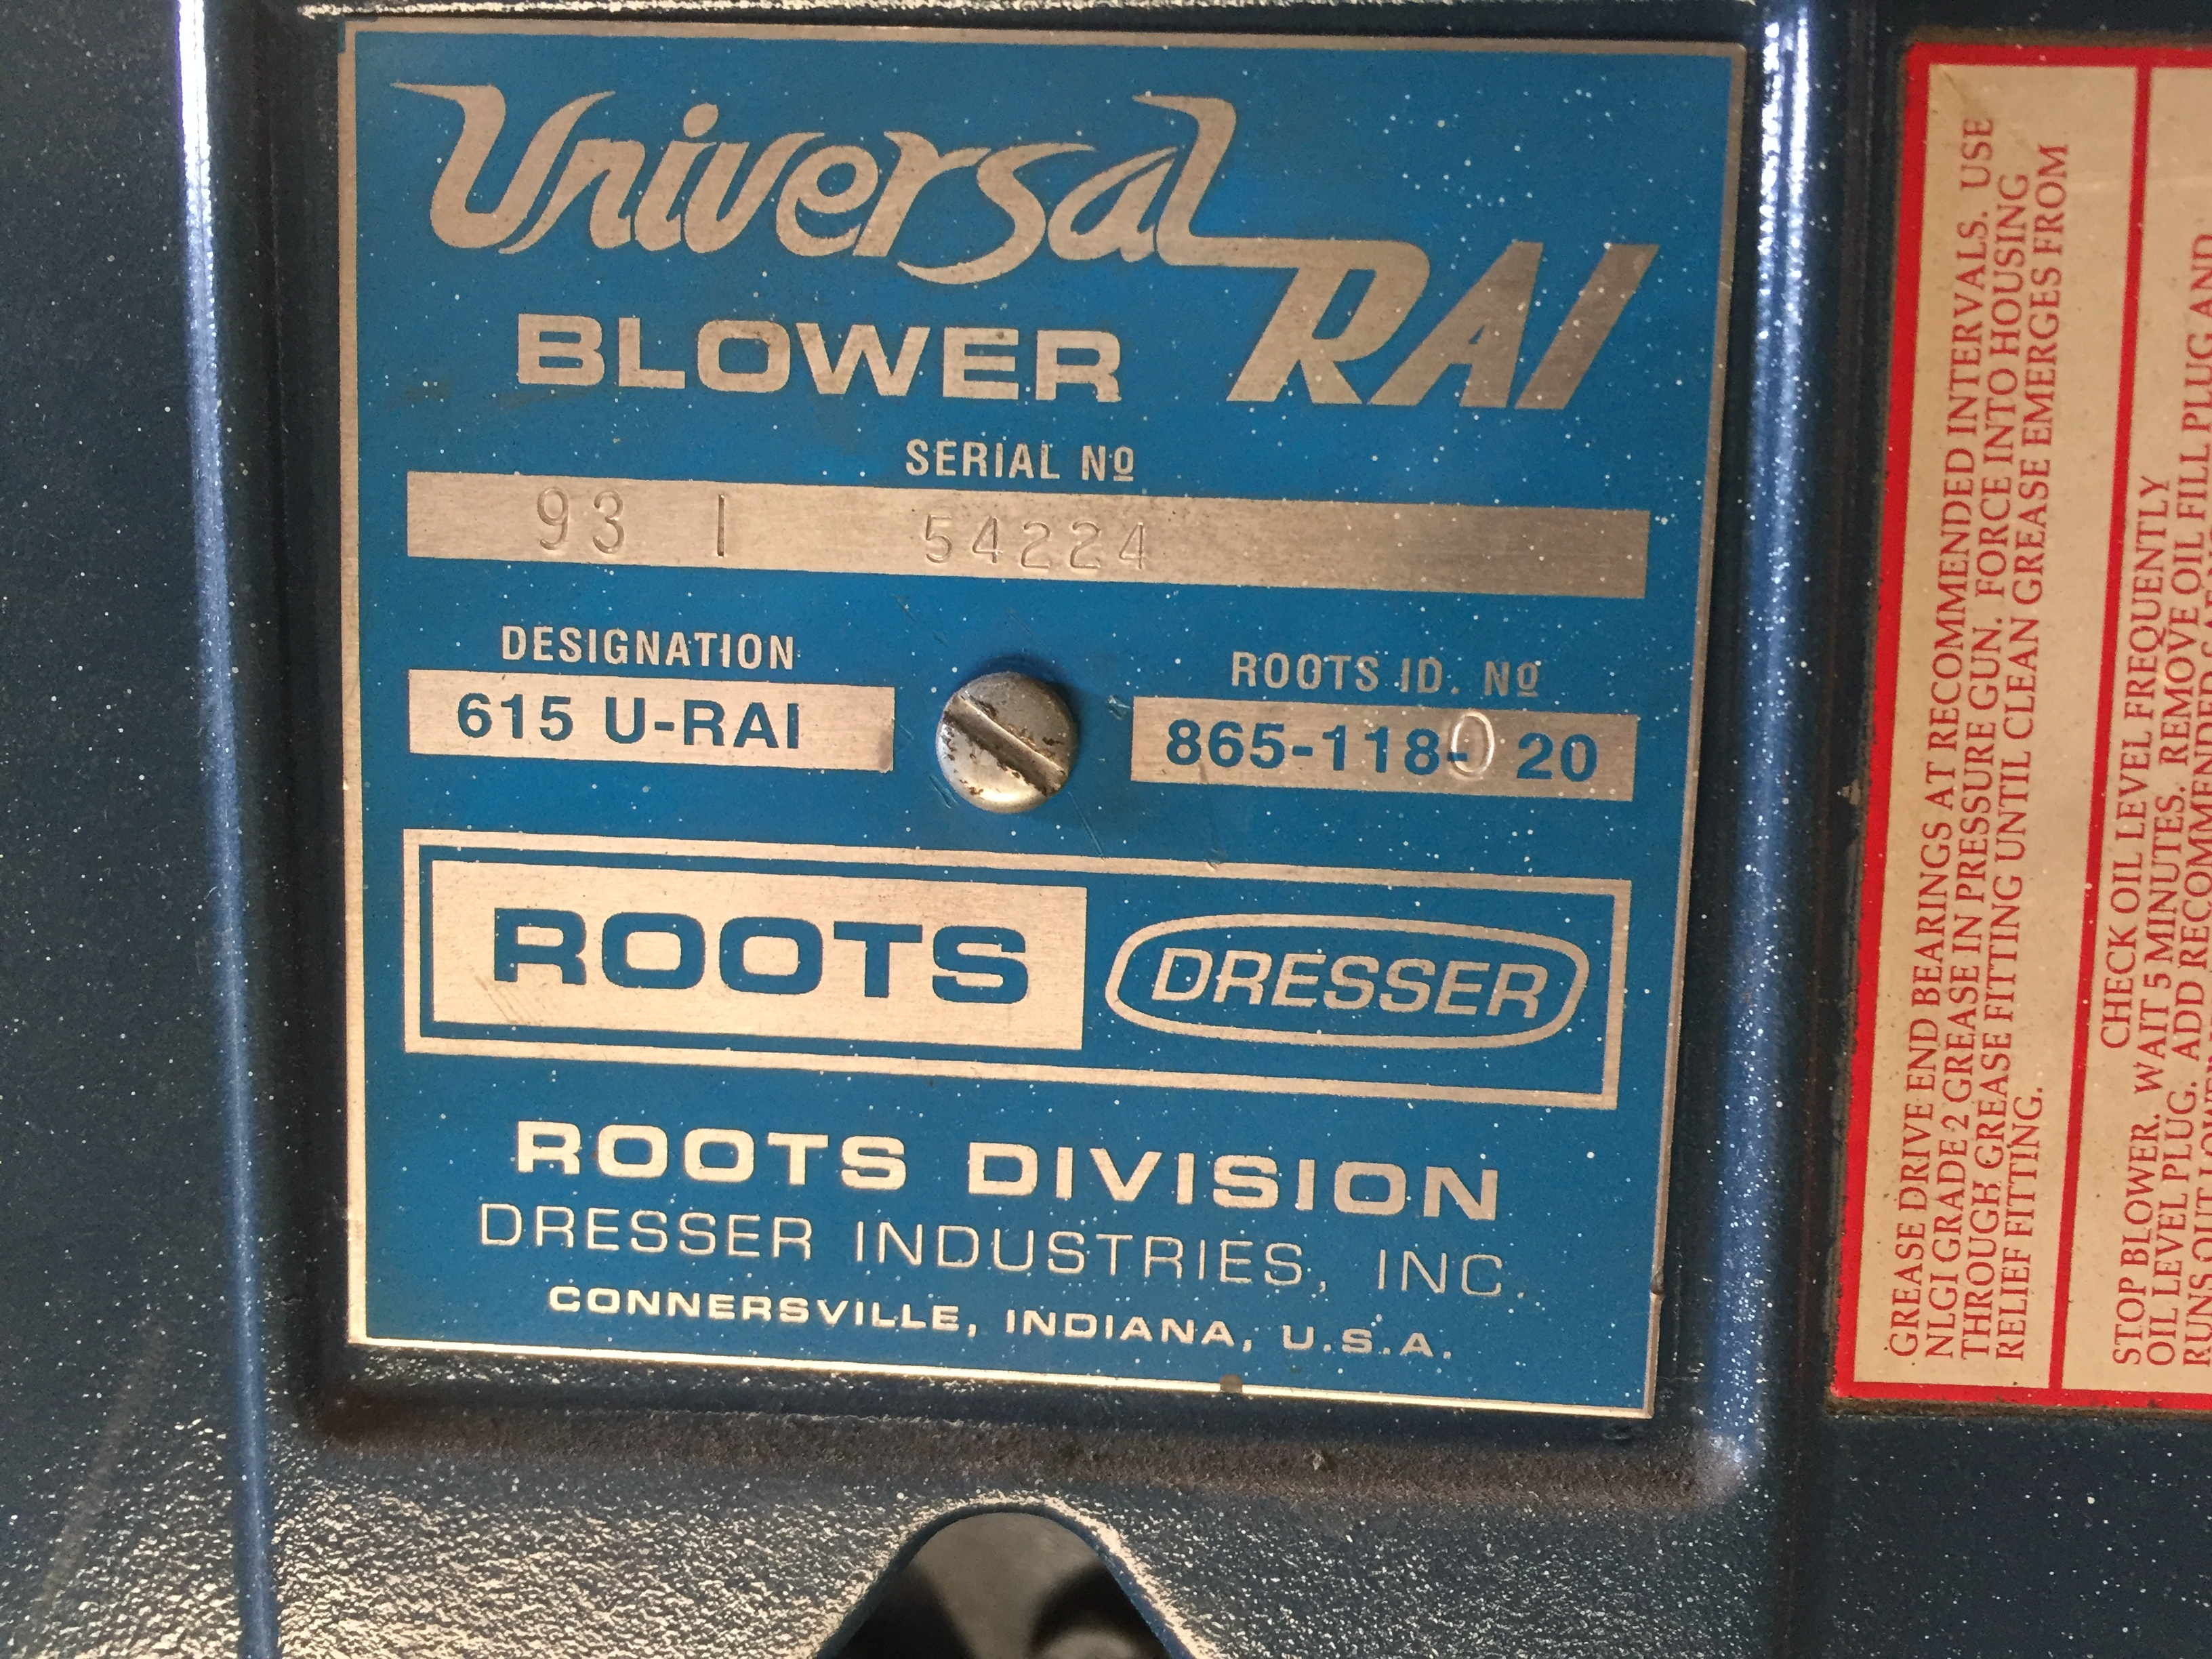 ROOTS HIGH PRESSURE PUMP/BLOWER - USED FOR PUMPING AIR INTO SILOS, ETC. MOVING PRODUCT - SERIAL # - Image 3 of 4